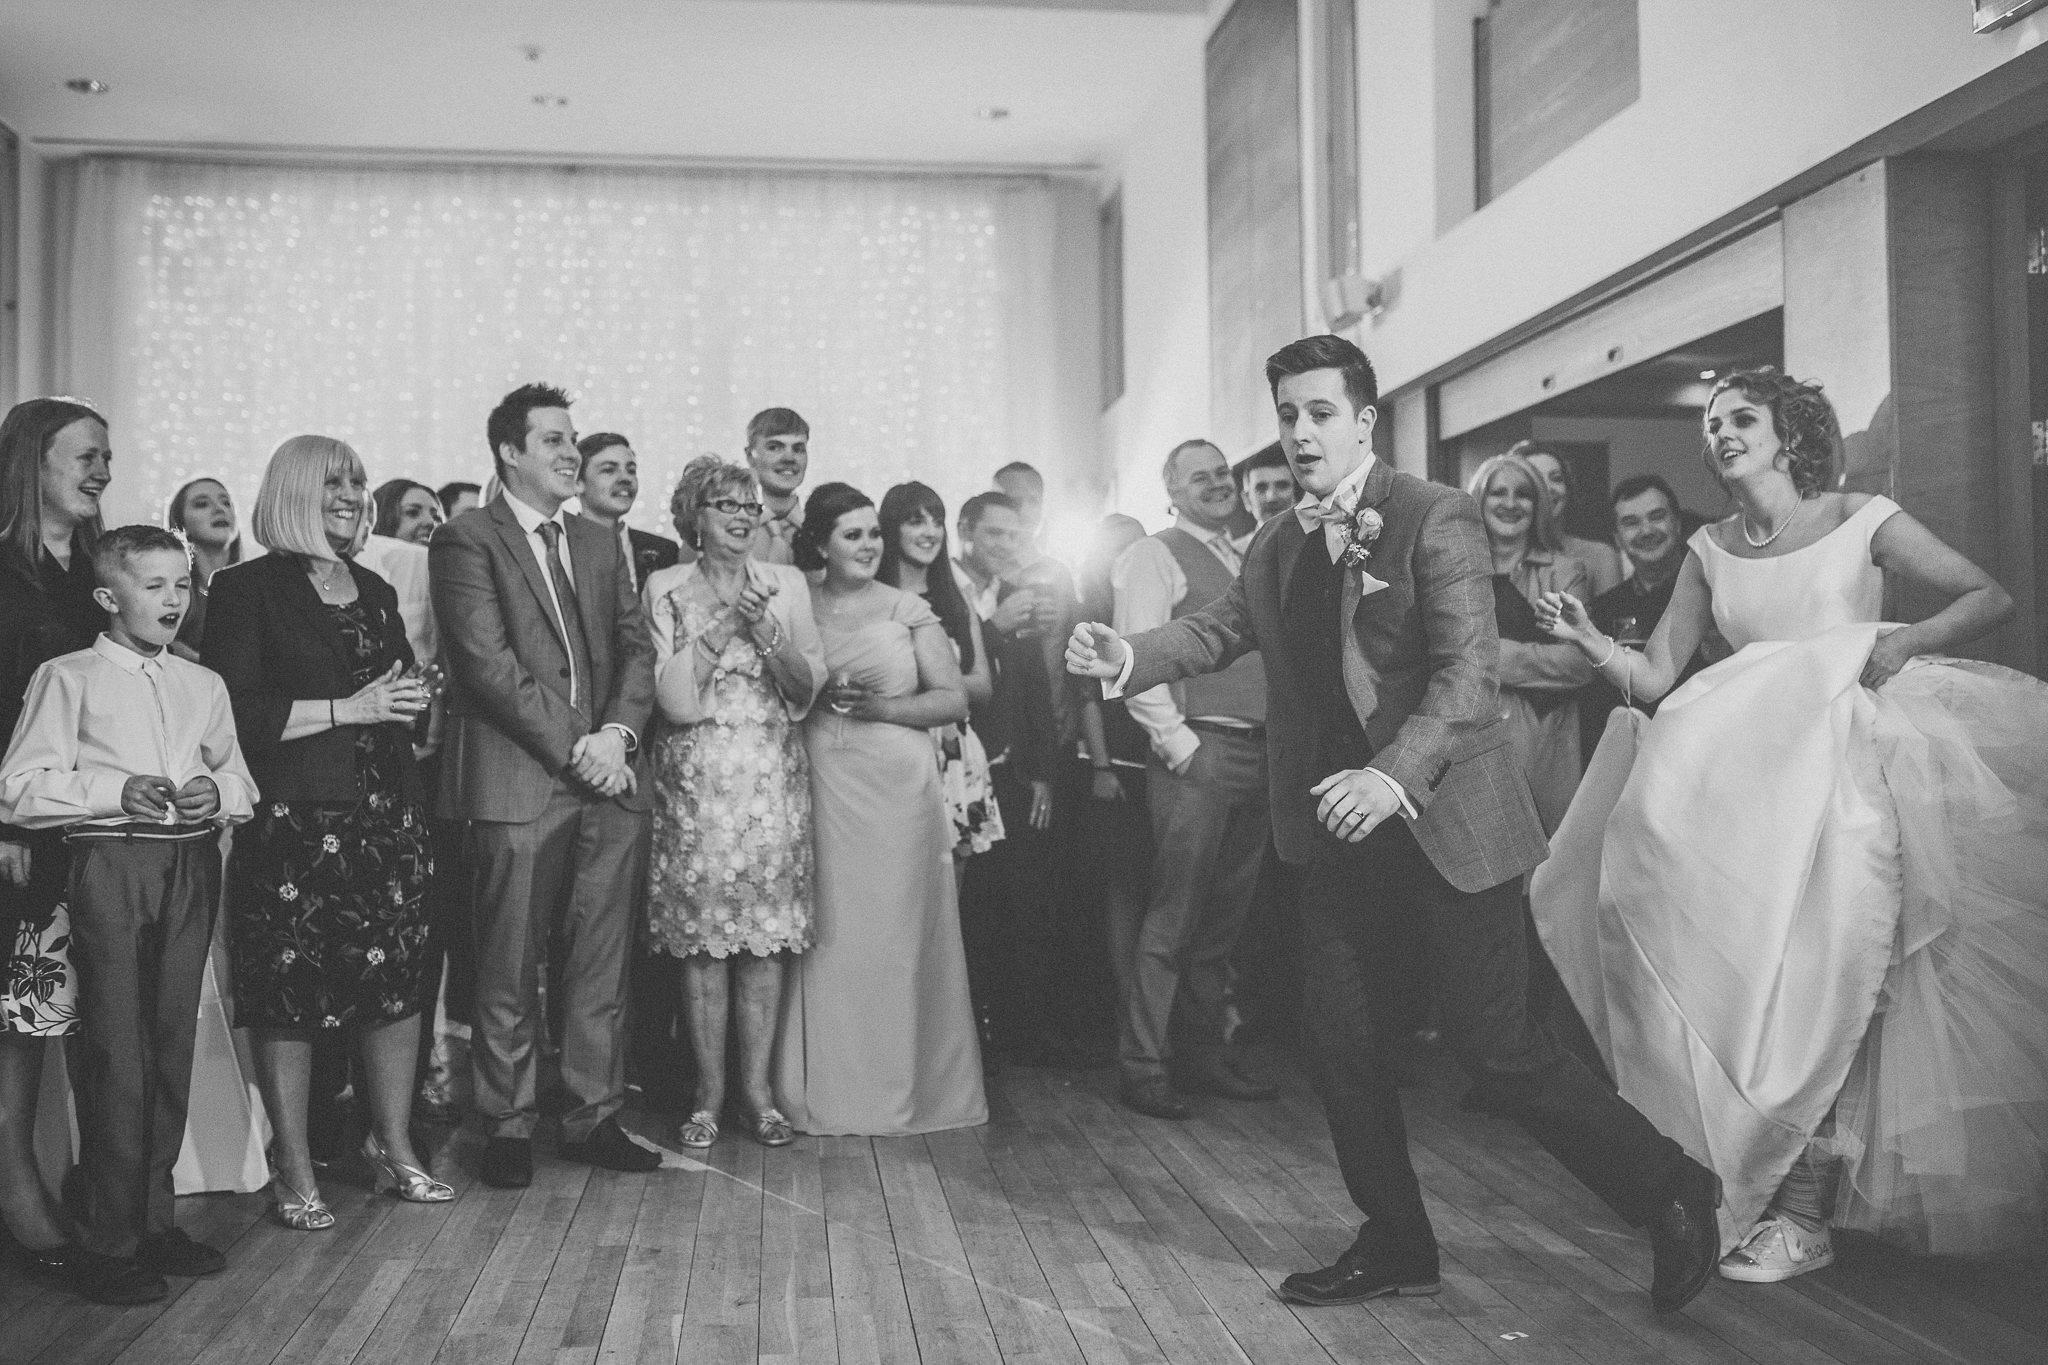 paul-marbrook-best-wedding-photographer-north-wales-137003